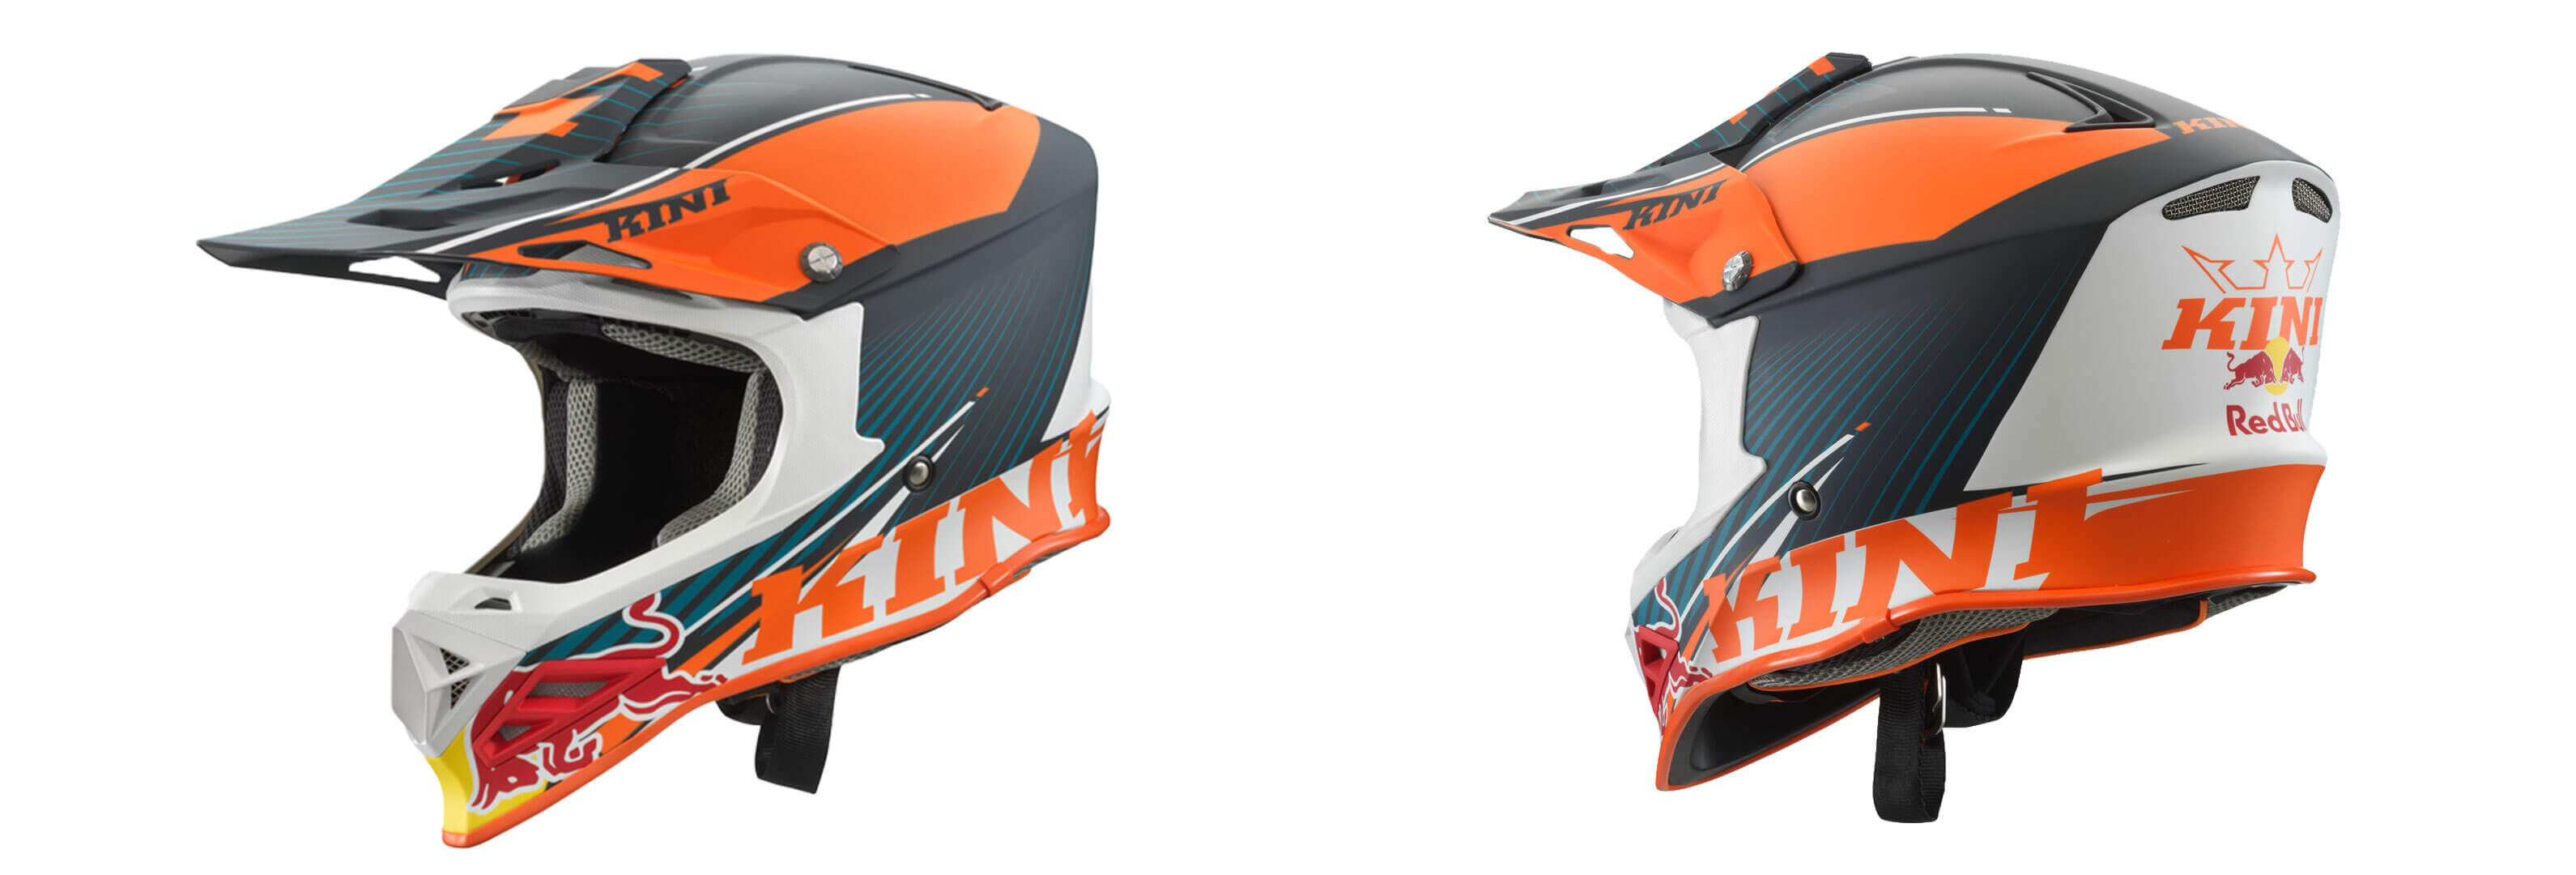 motocross-helm-enduro-helm-crosshelm-kini-red-bull-2020